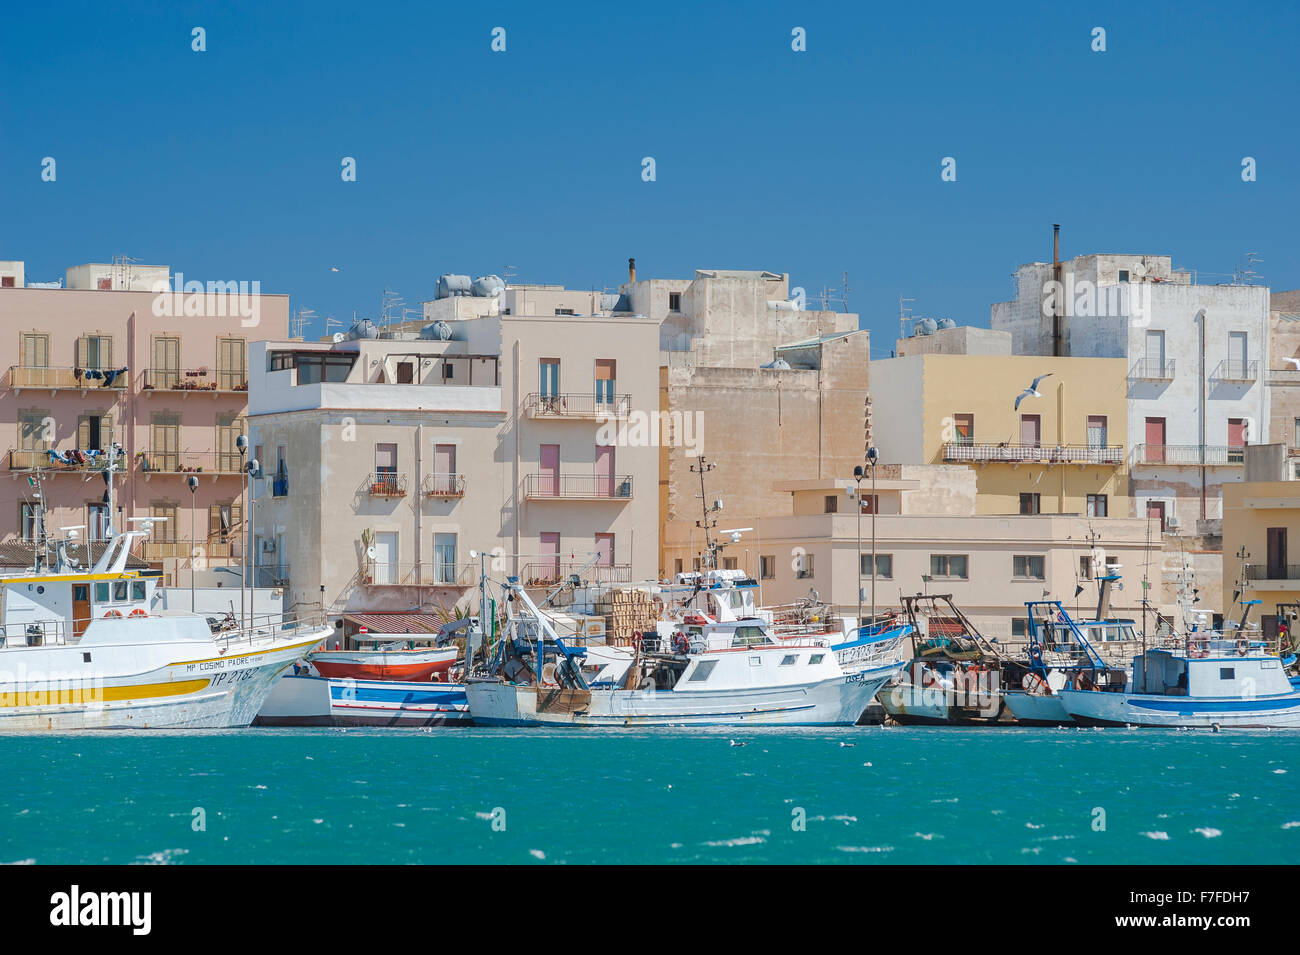 Sicily coast town, fishing boats moored along the quayside in Trapani harbor,  Sicily. - Stock Image